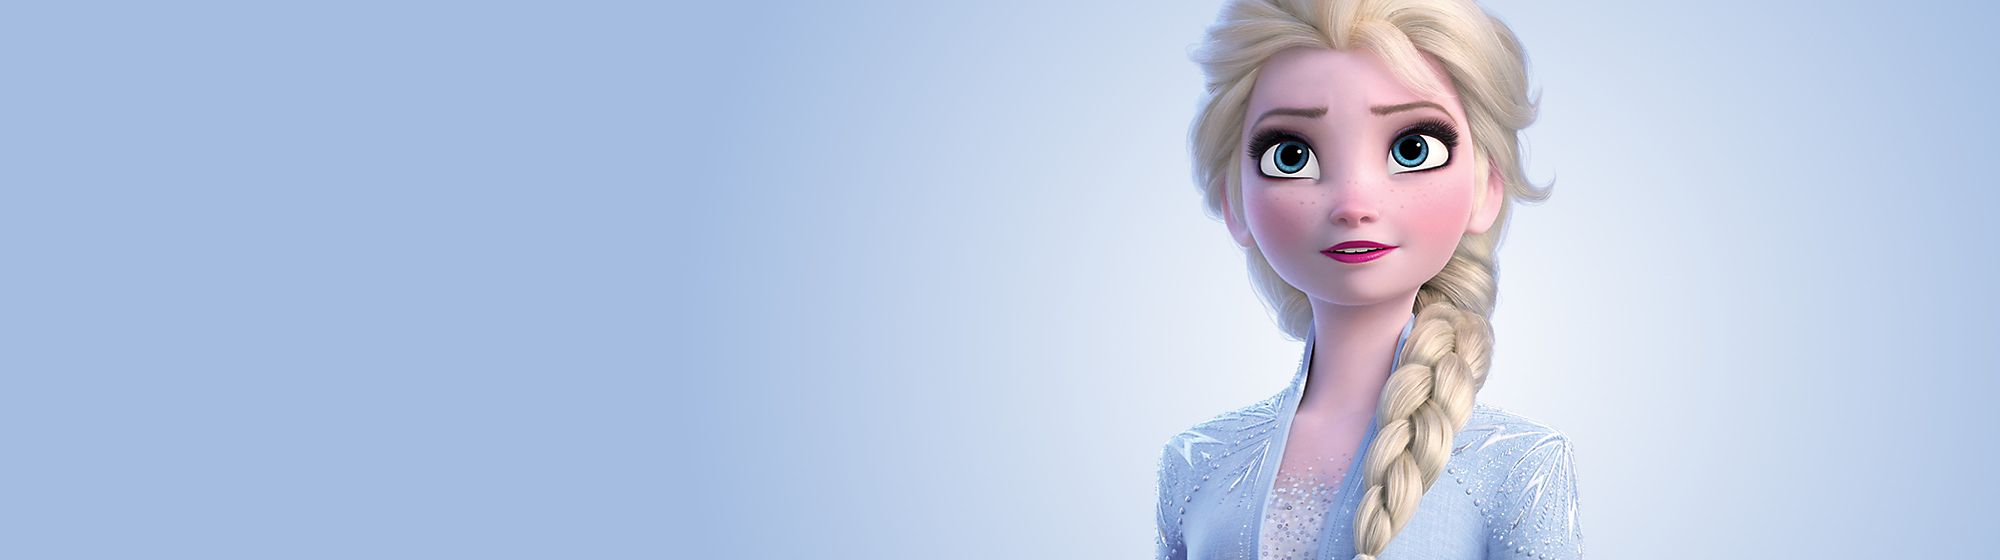 Elsa Enter Arendelle with our exciting range of Elsa from Frozen merchandise including costumes, toys, dolls and more